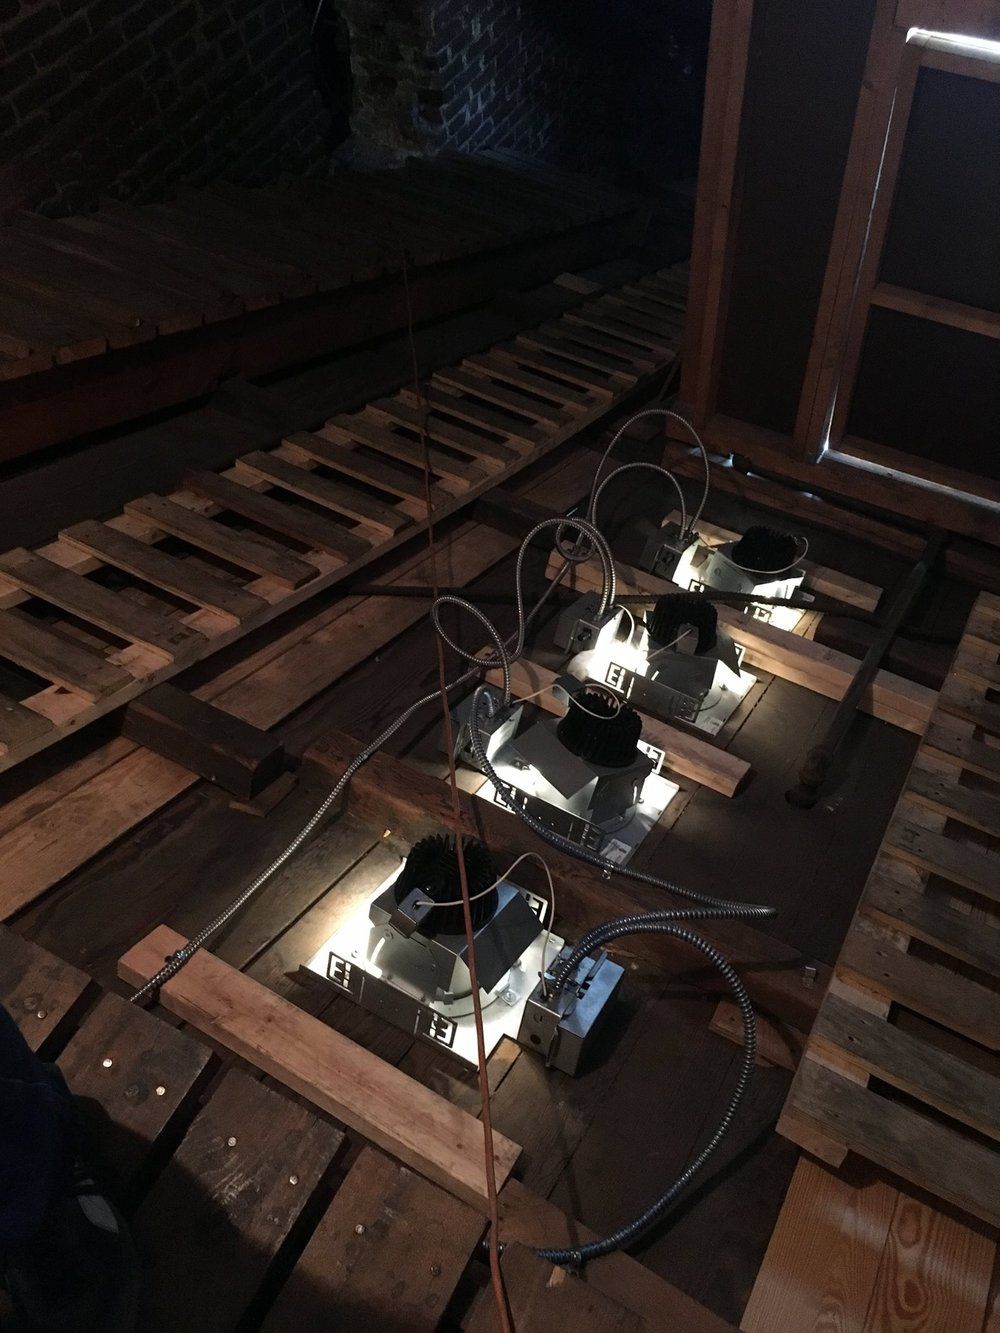 Some of our new lights! Looking down on the organ.